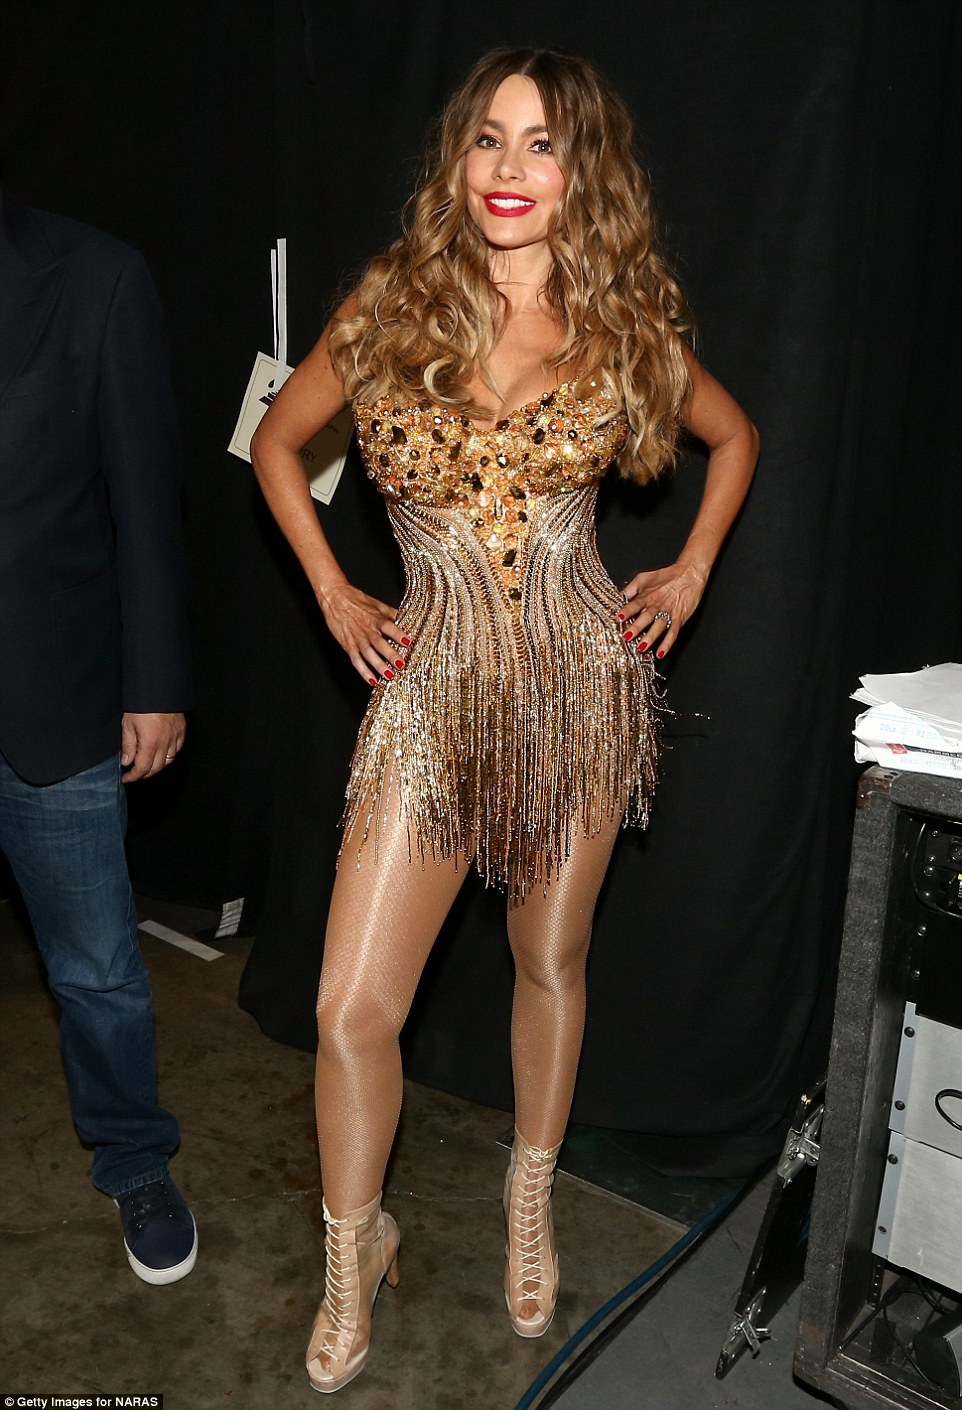 31417DC700000578-3448922-Slaying_Sofia_showed_off_her_super_sexy_outfit_backstage-a-19_1455611961944